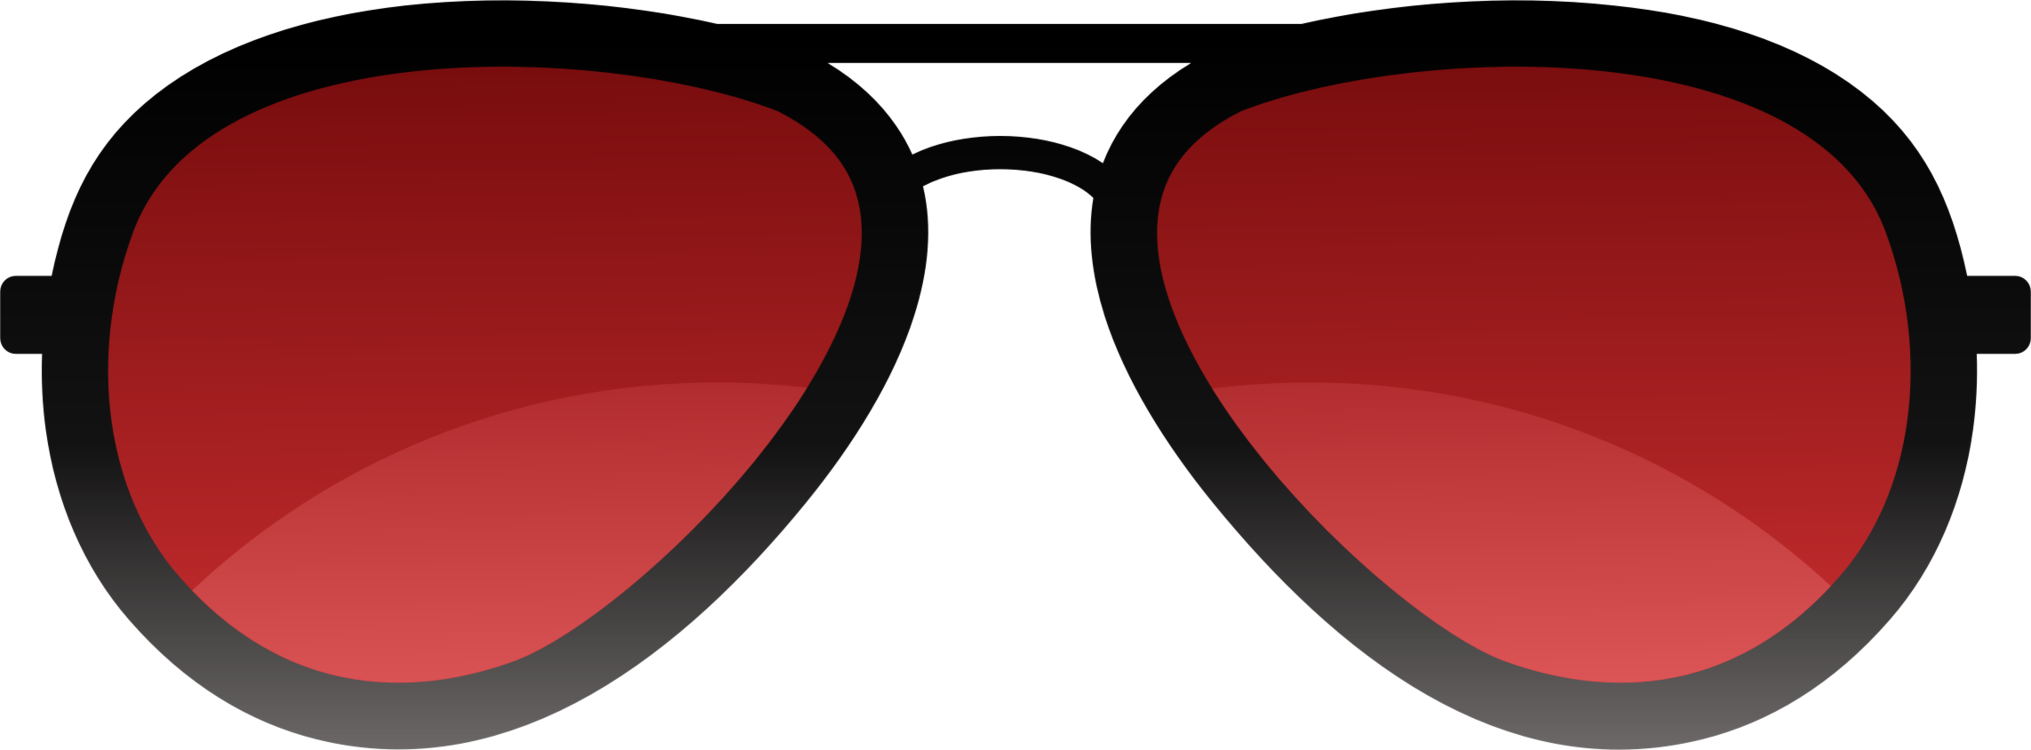 Sunglasses,Vision Care,Eyewear PNG Clipart.